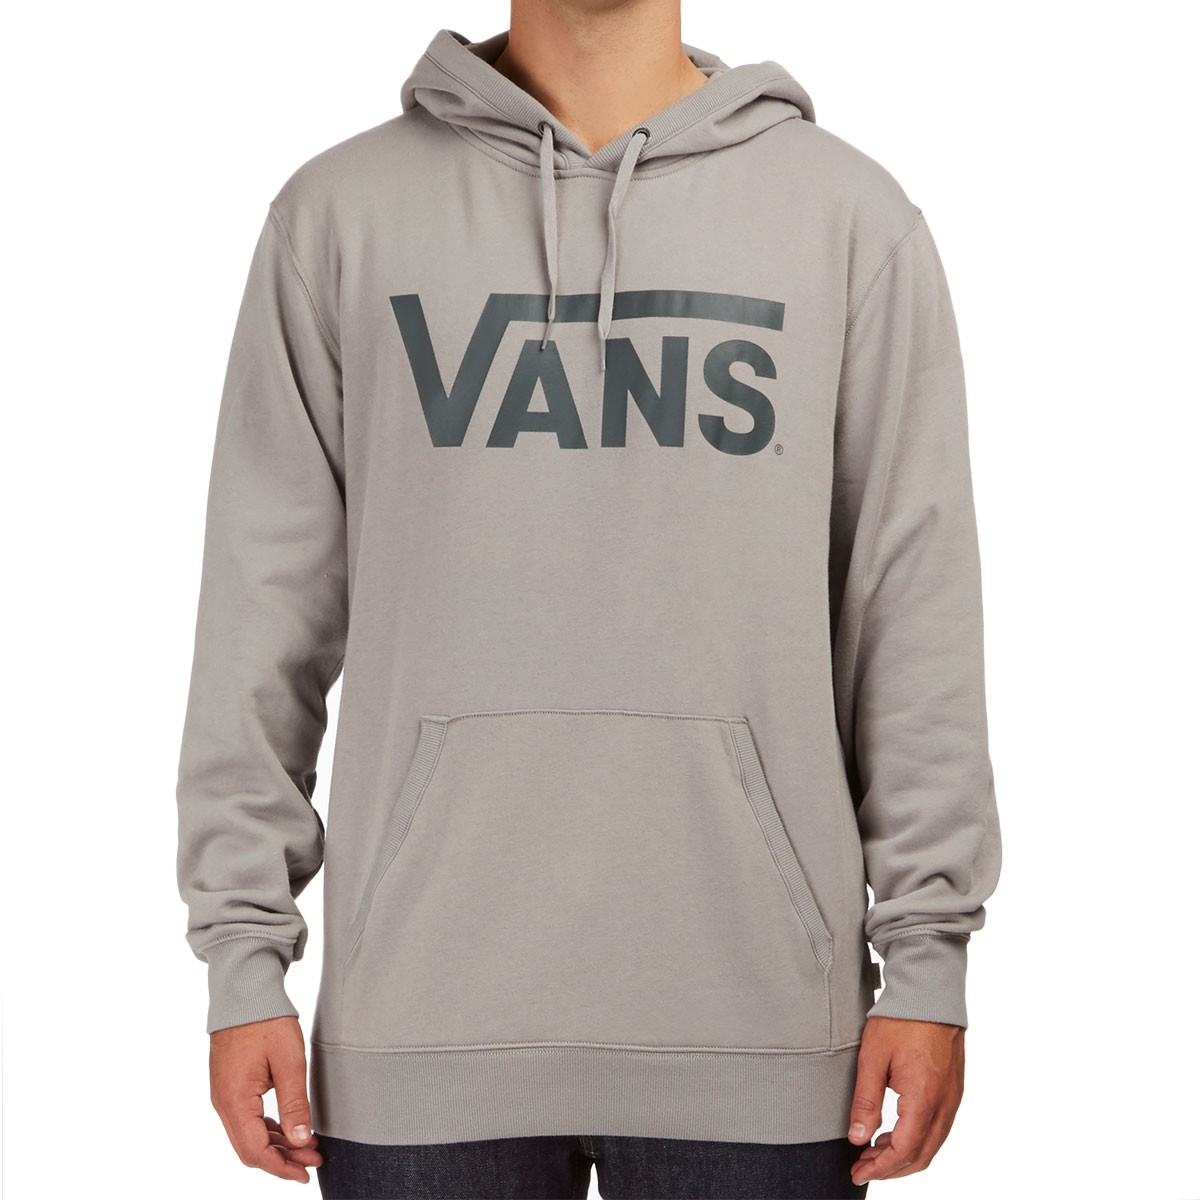 6e9010d1d0 Vans Classic Pullover Hoodie - Frost Grey/New Charcoal